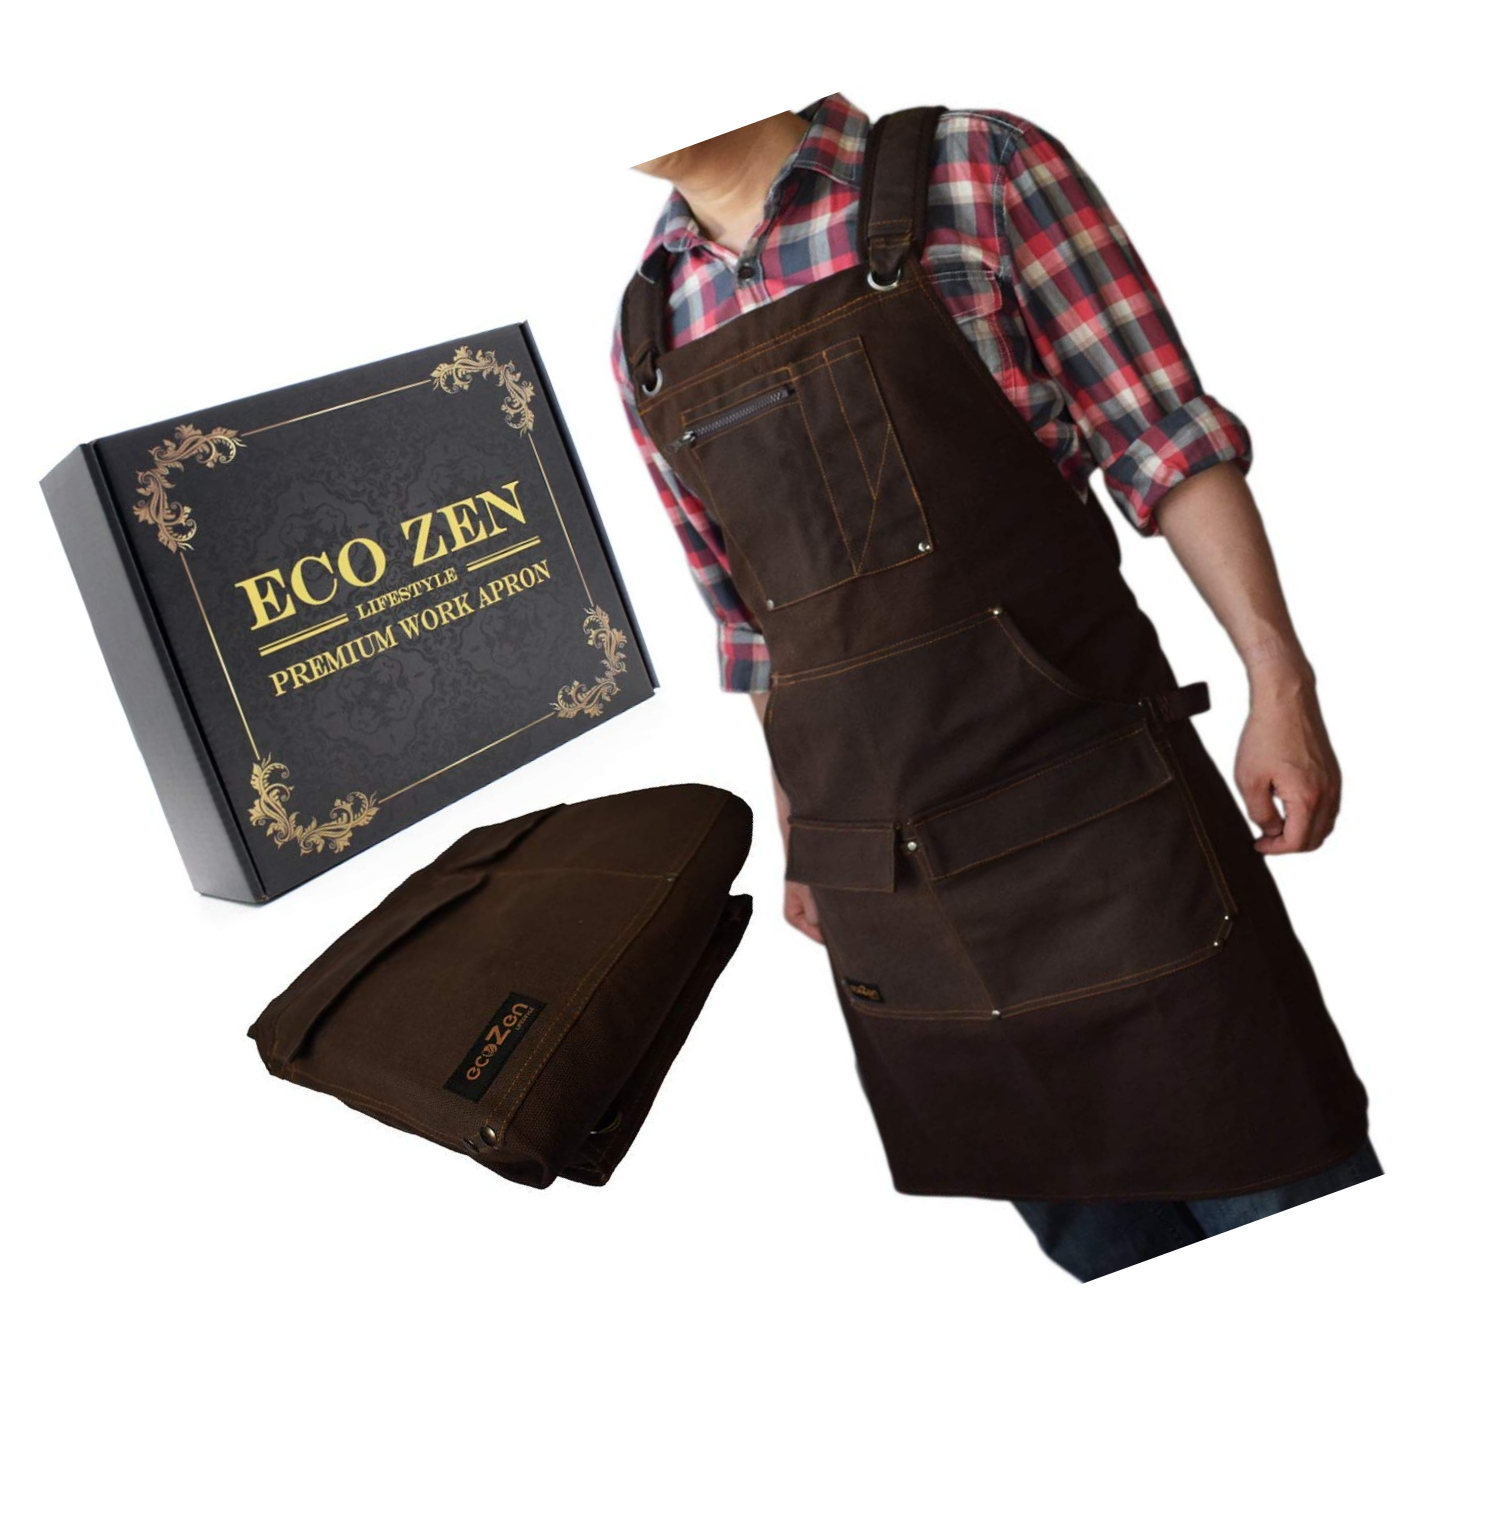 Fully Adjustable to Comfortably Fit Men and Women Size S to XXL Work Apron Waterproof Canvas Work Apron with Pockets Tough Tool Apron to Give Protection